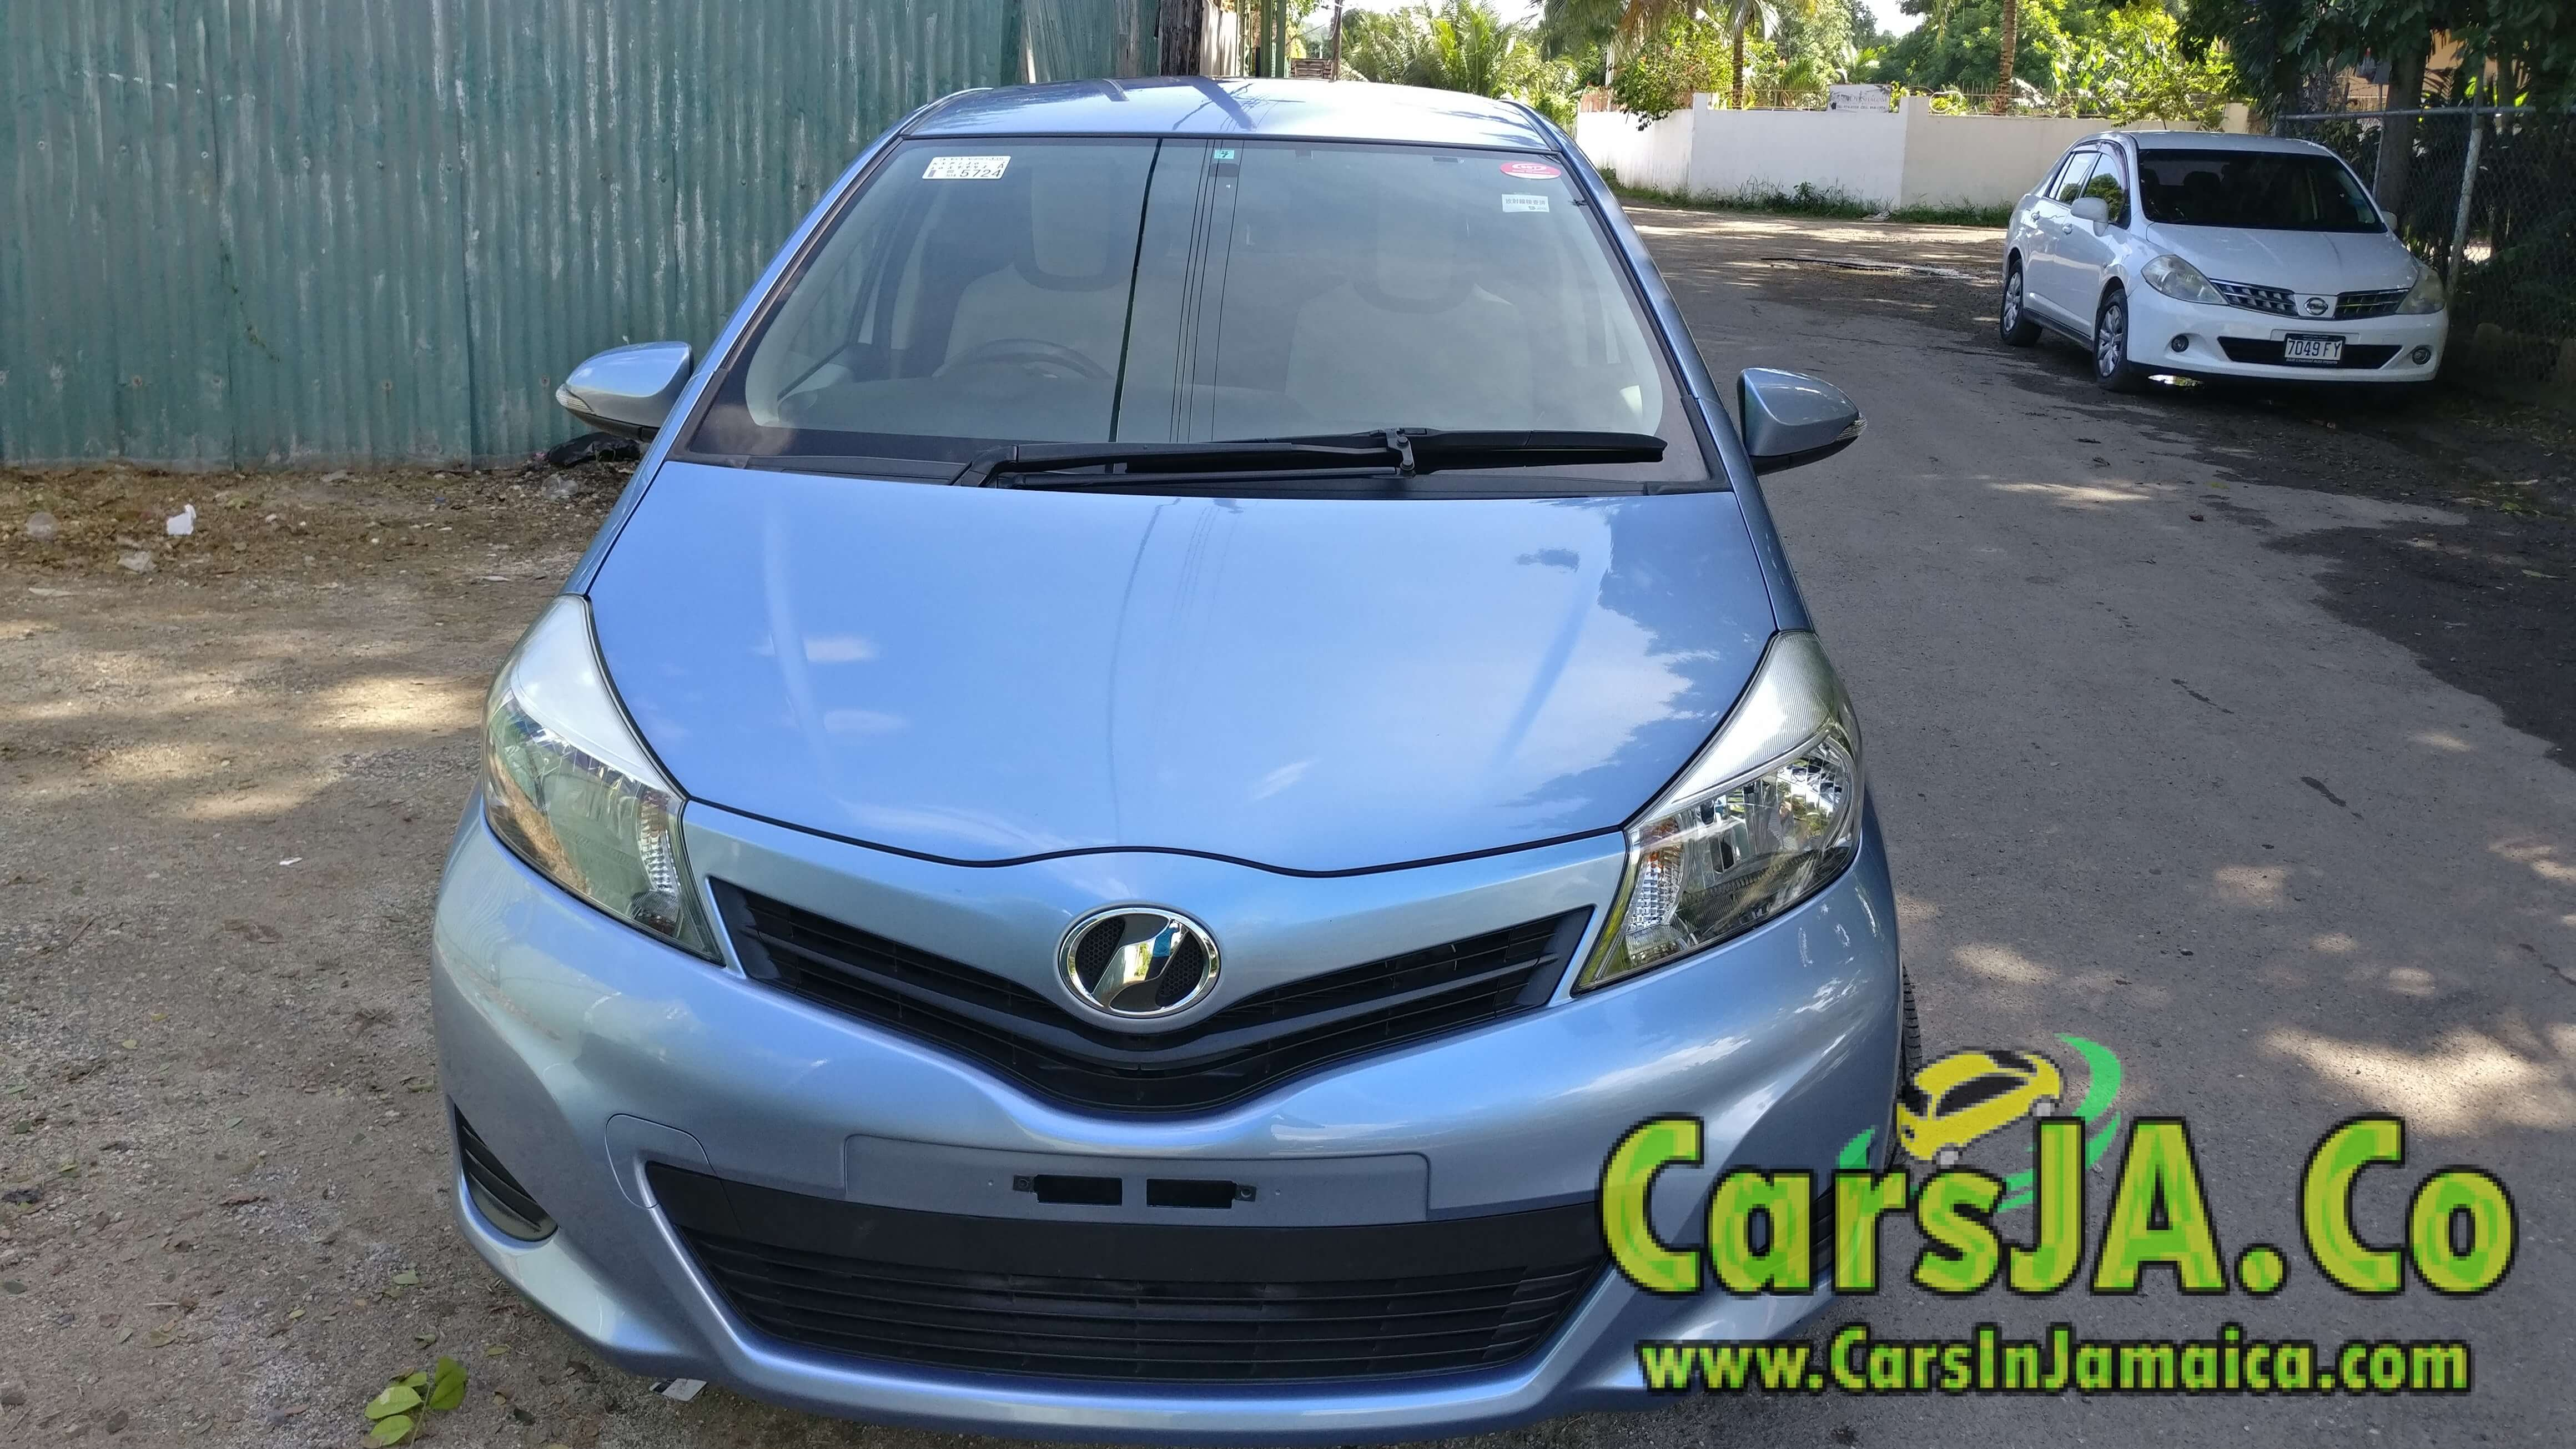 Toyota vitz for in Jamaica | CarsJa.Co